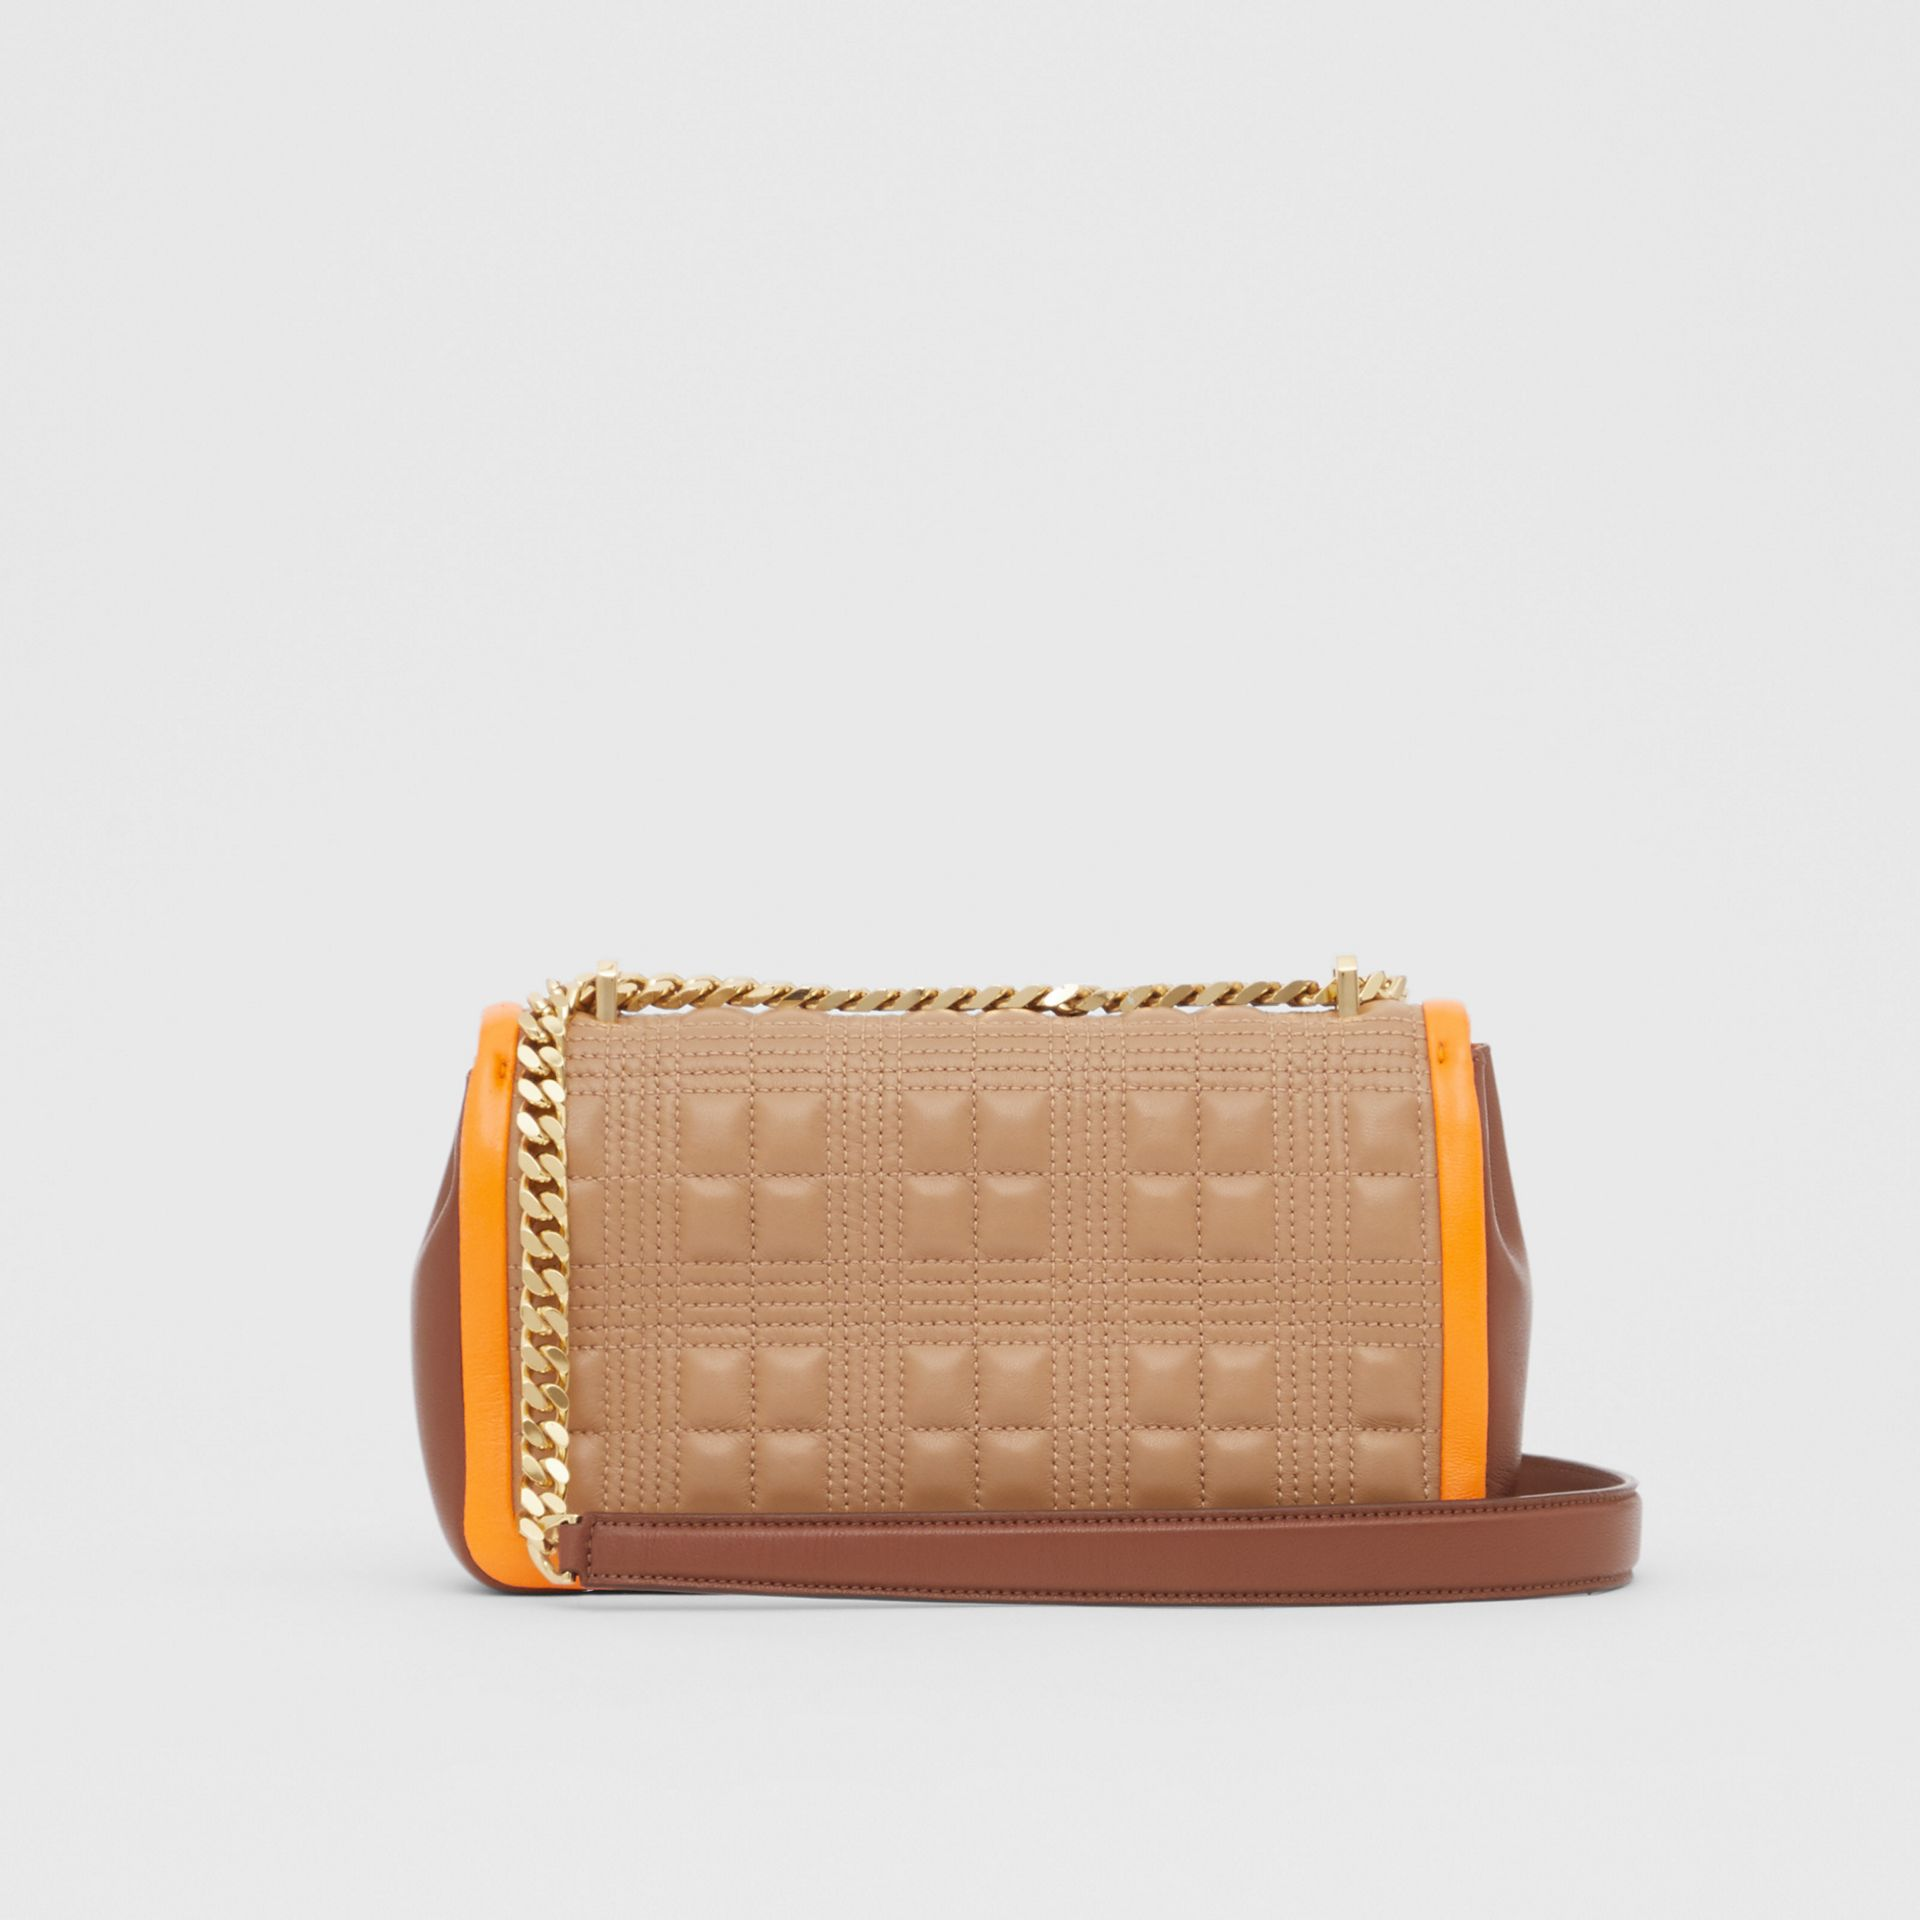 Small Quilted Tri-tone Lambskin Lola Bag in Camel/bright Orange - Women | Burberry - gallery image 7